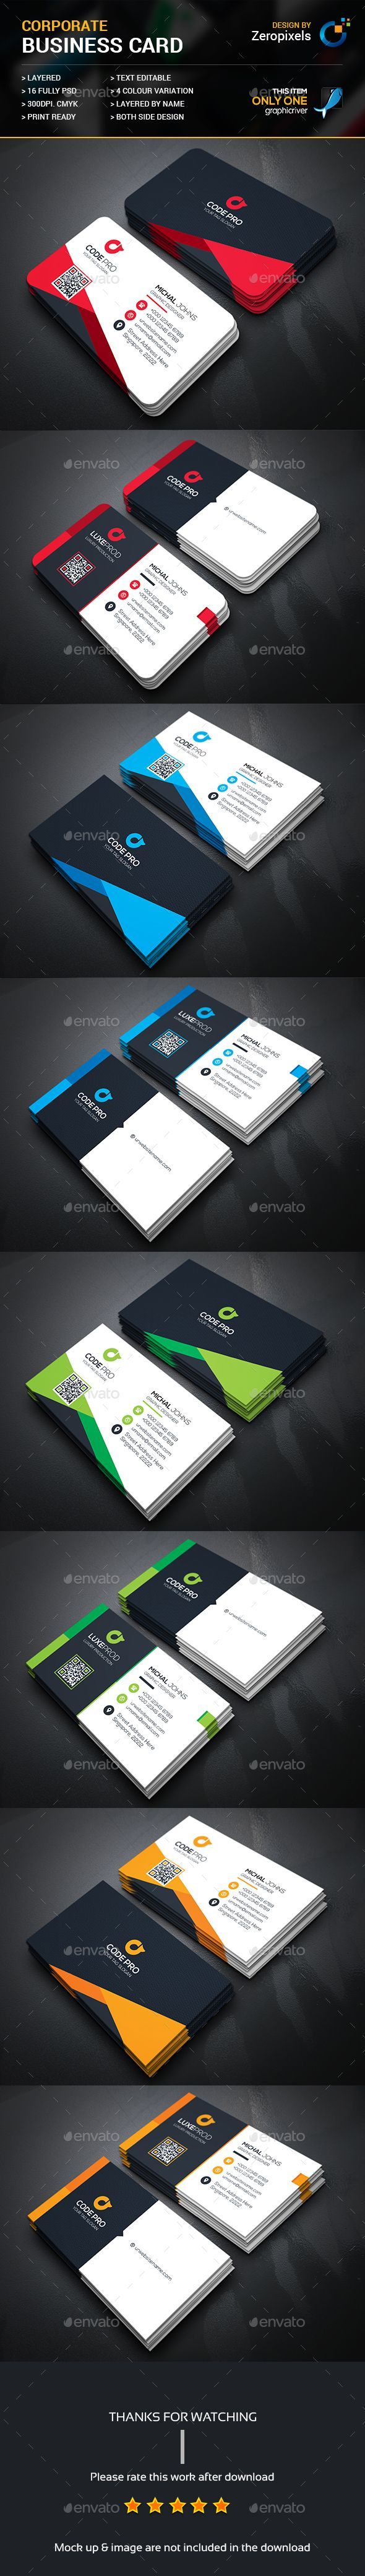 68 best d n n n n d d n d unpix ru images on pinterest business cards